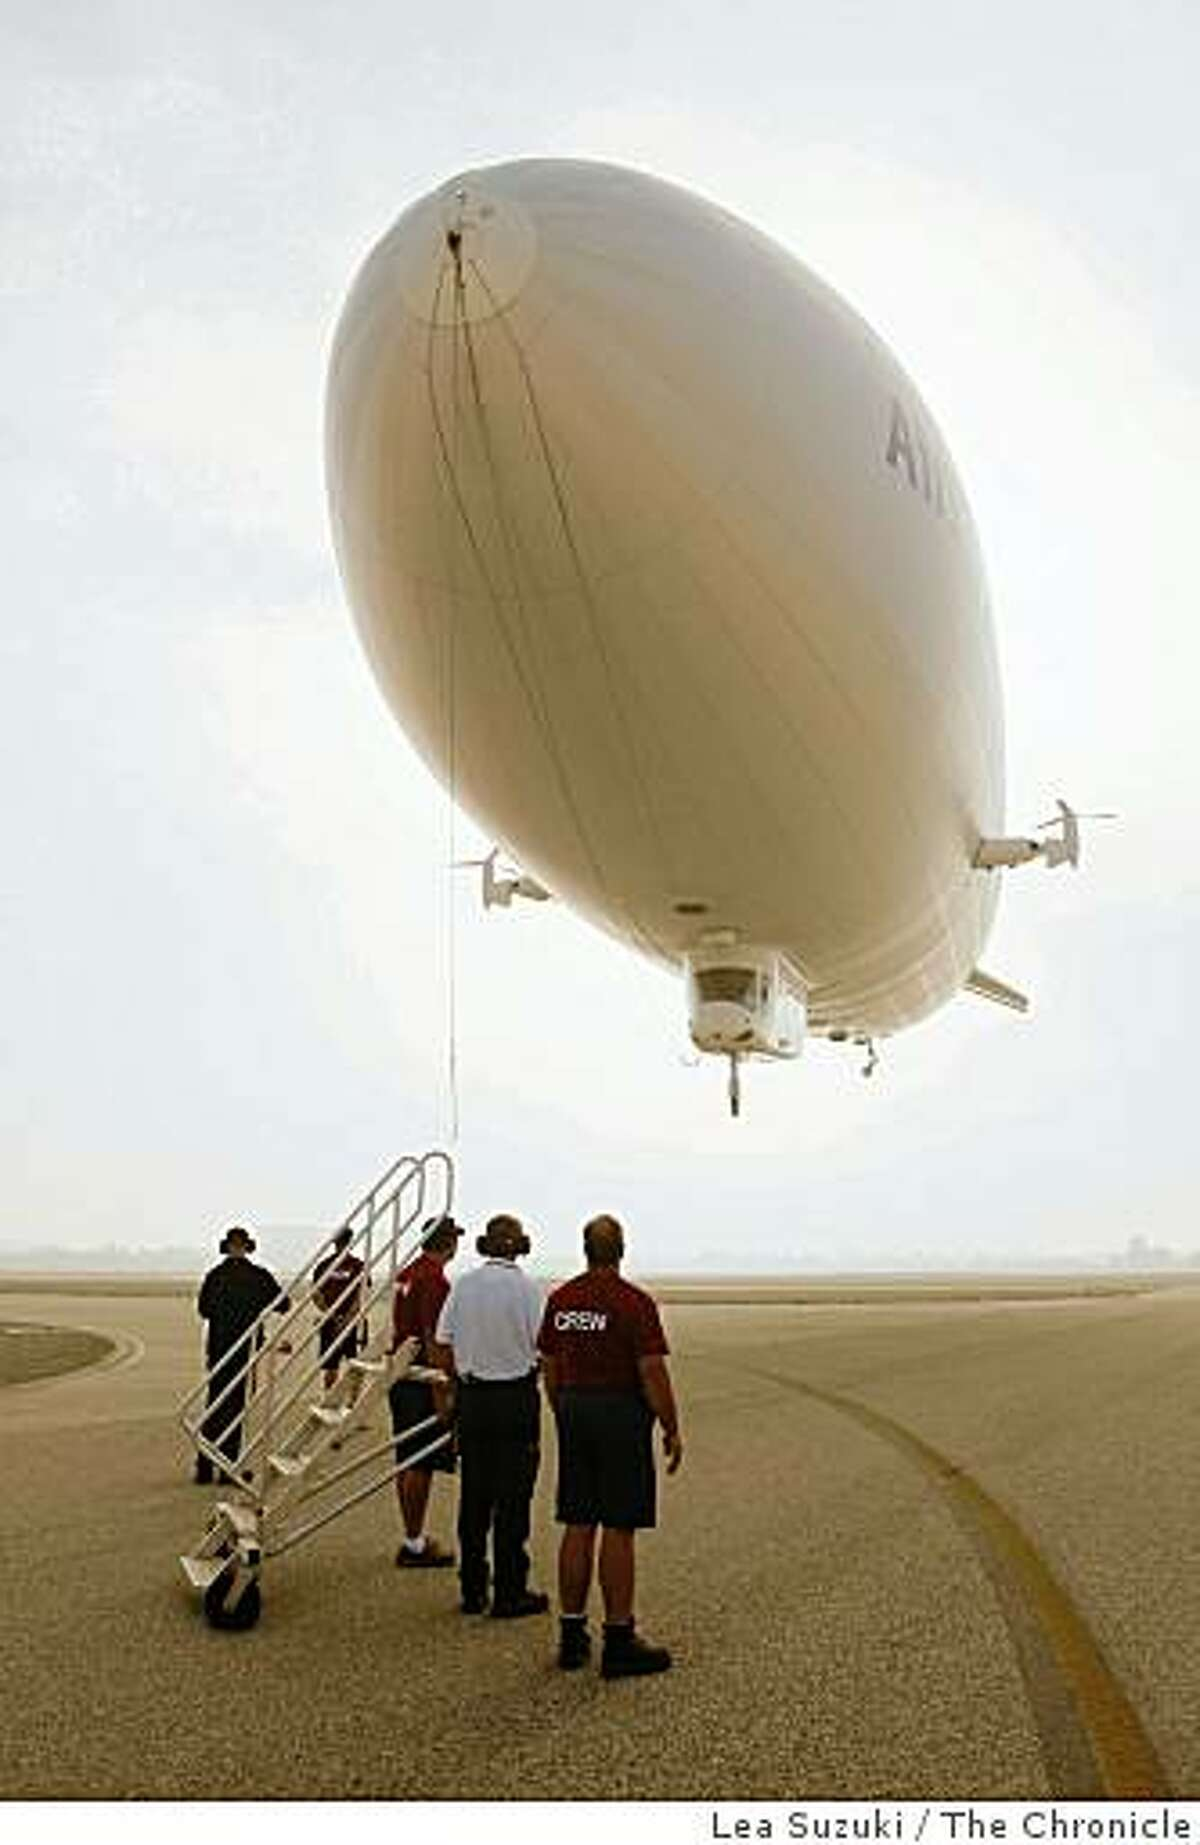 The ground crew prepares for the Zeppelin NT's landing at Moffet Field on Monday, October 27, 2008 in Mountain View, Calif.